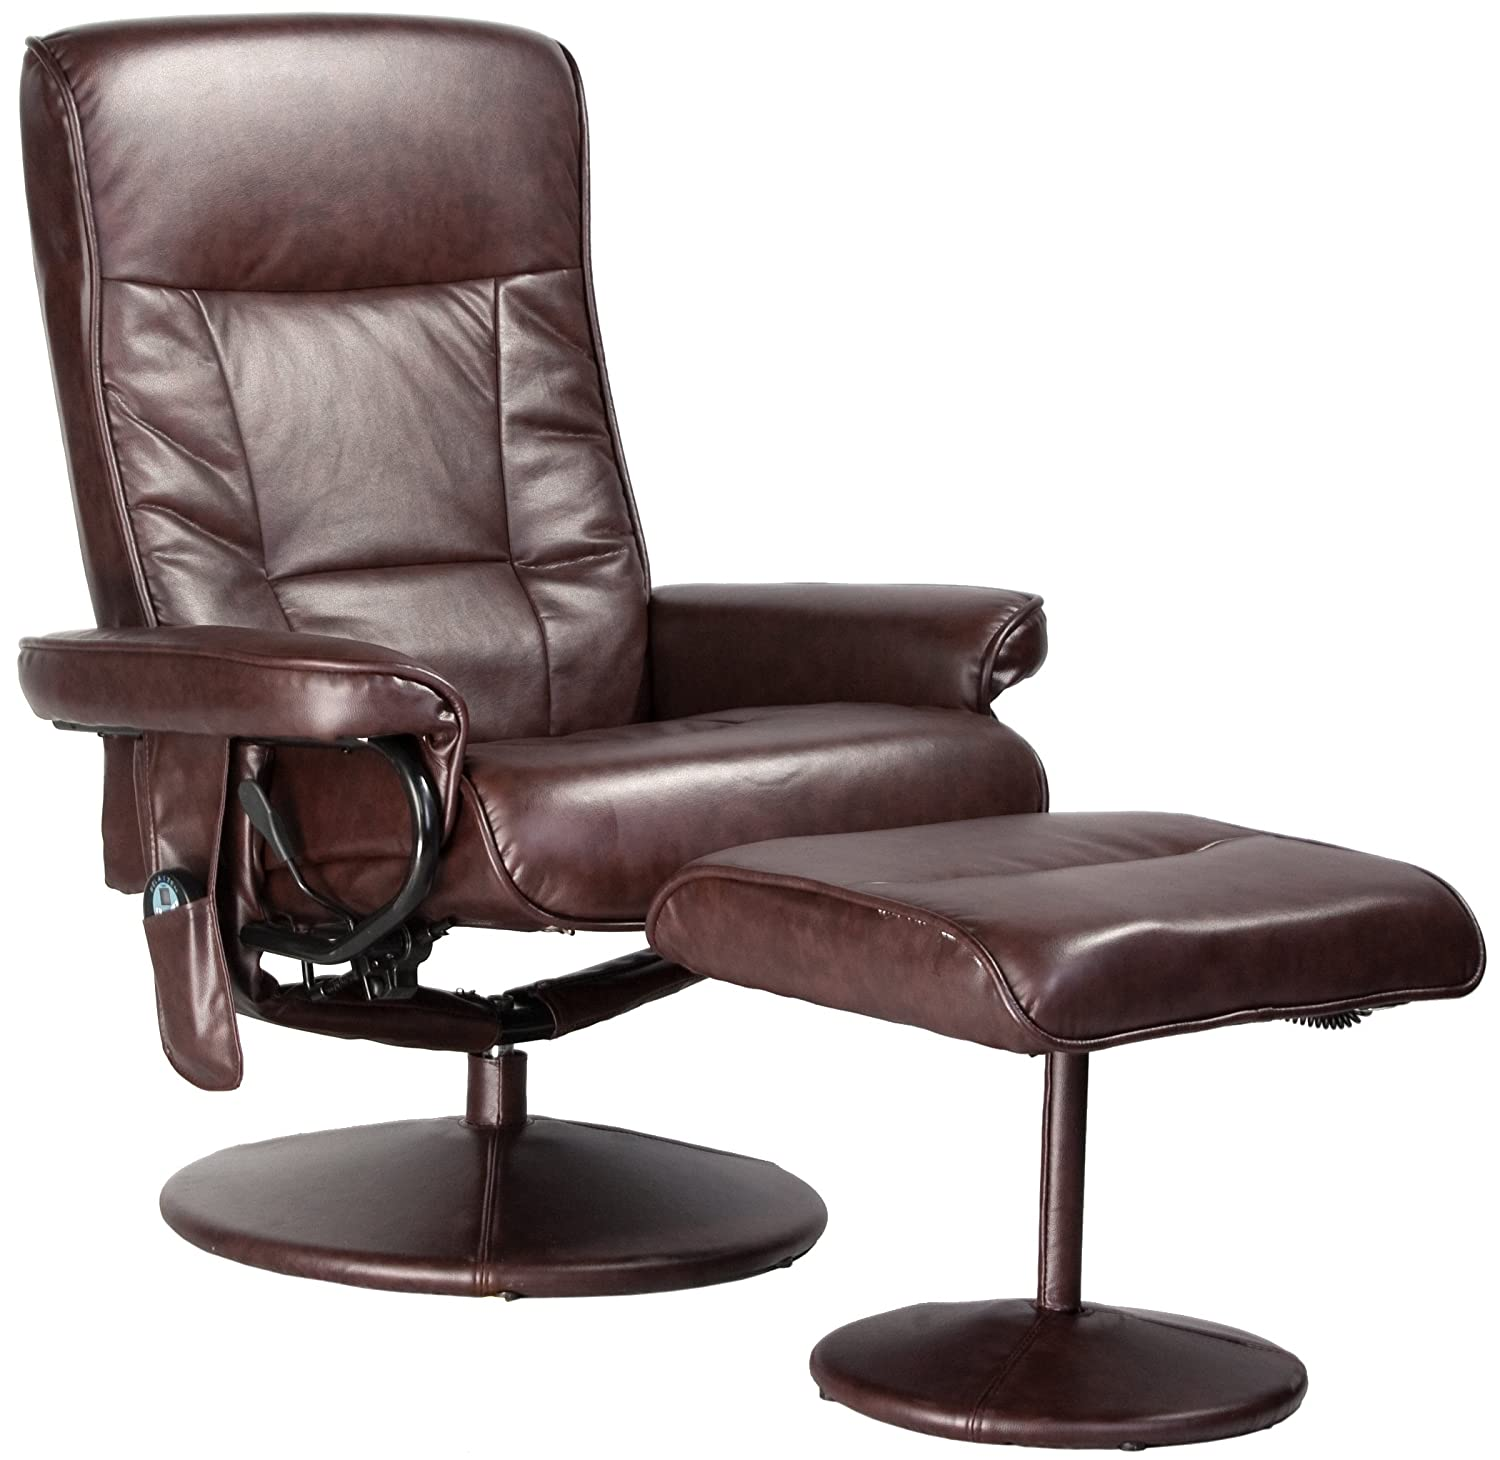 Relaxzen 60-425111 Leisure Recliner Chair with 8-Motor Massage & Heat - Brown